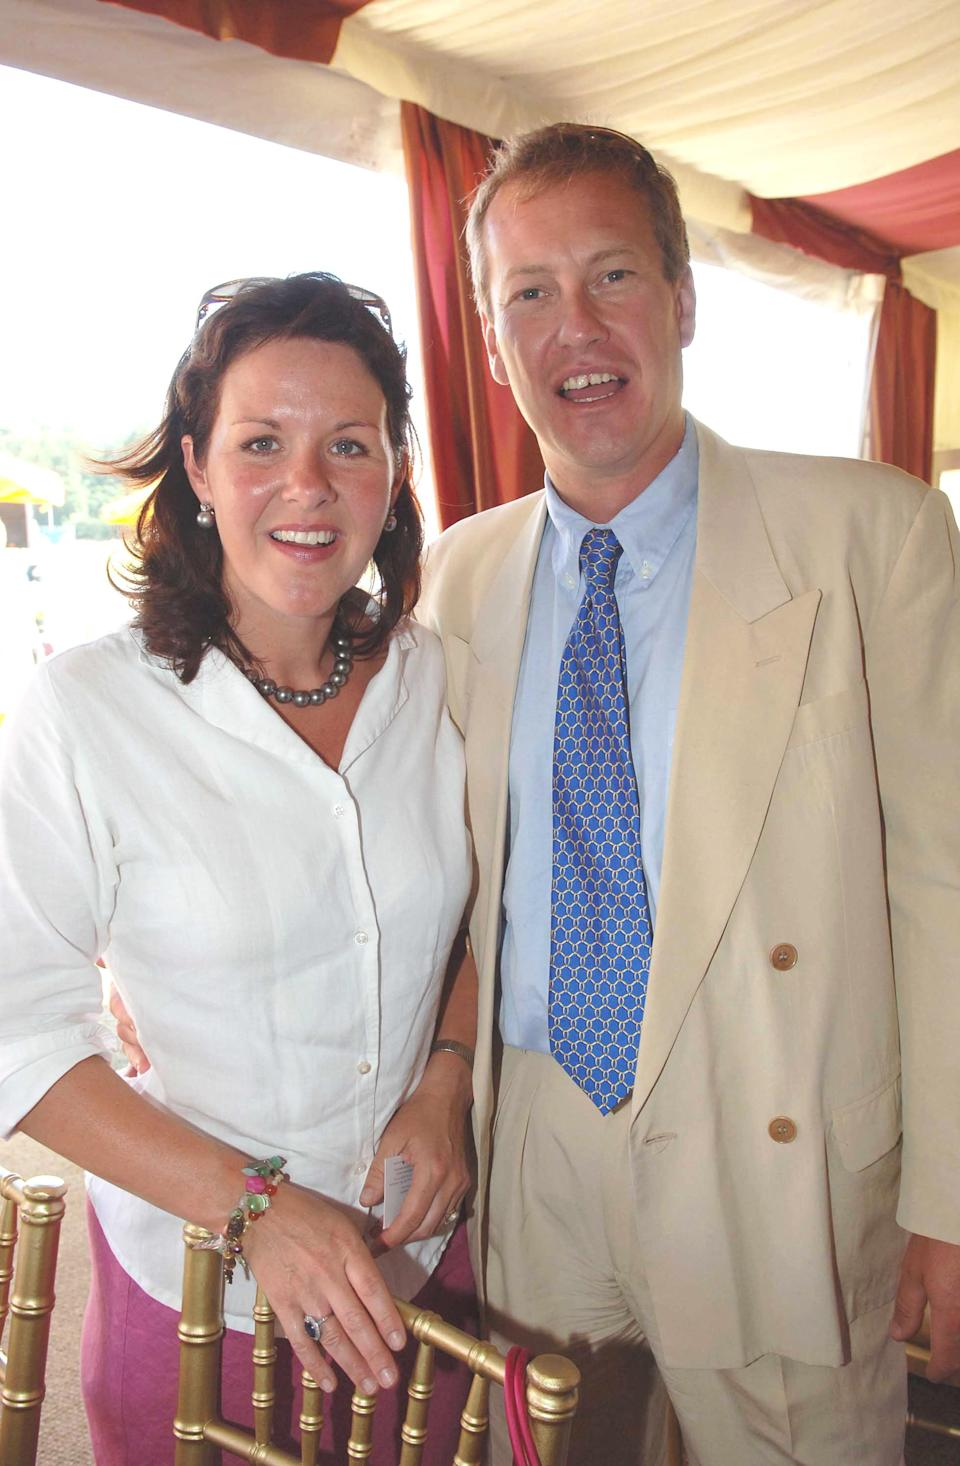 Lord Ivar and the former Lady Mountbatten in 2005 [Photo: Rex]